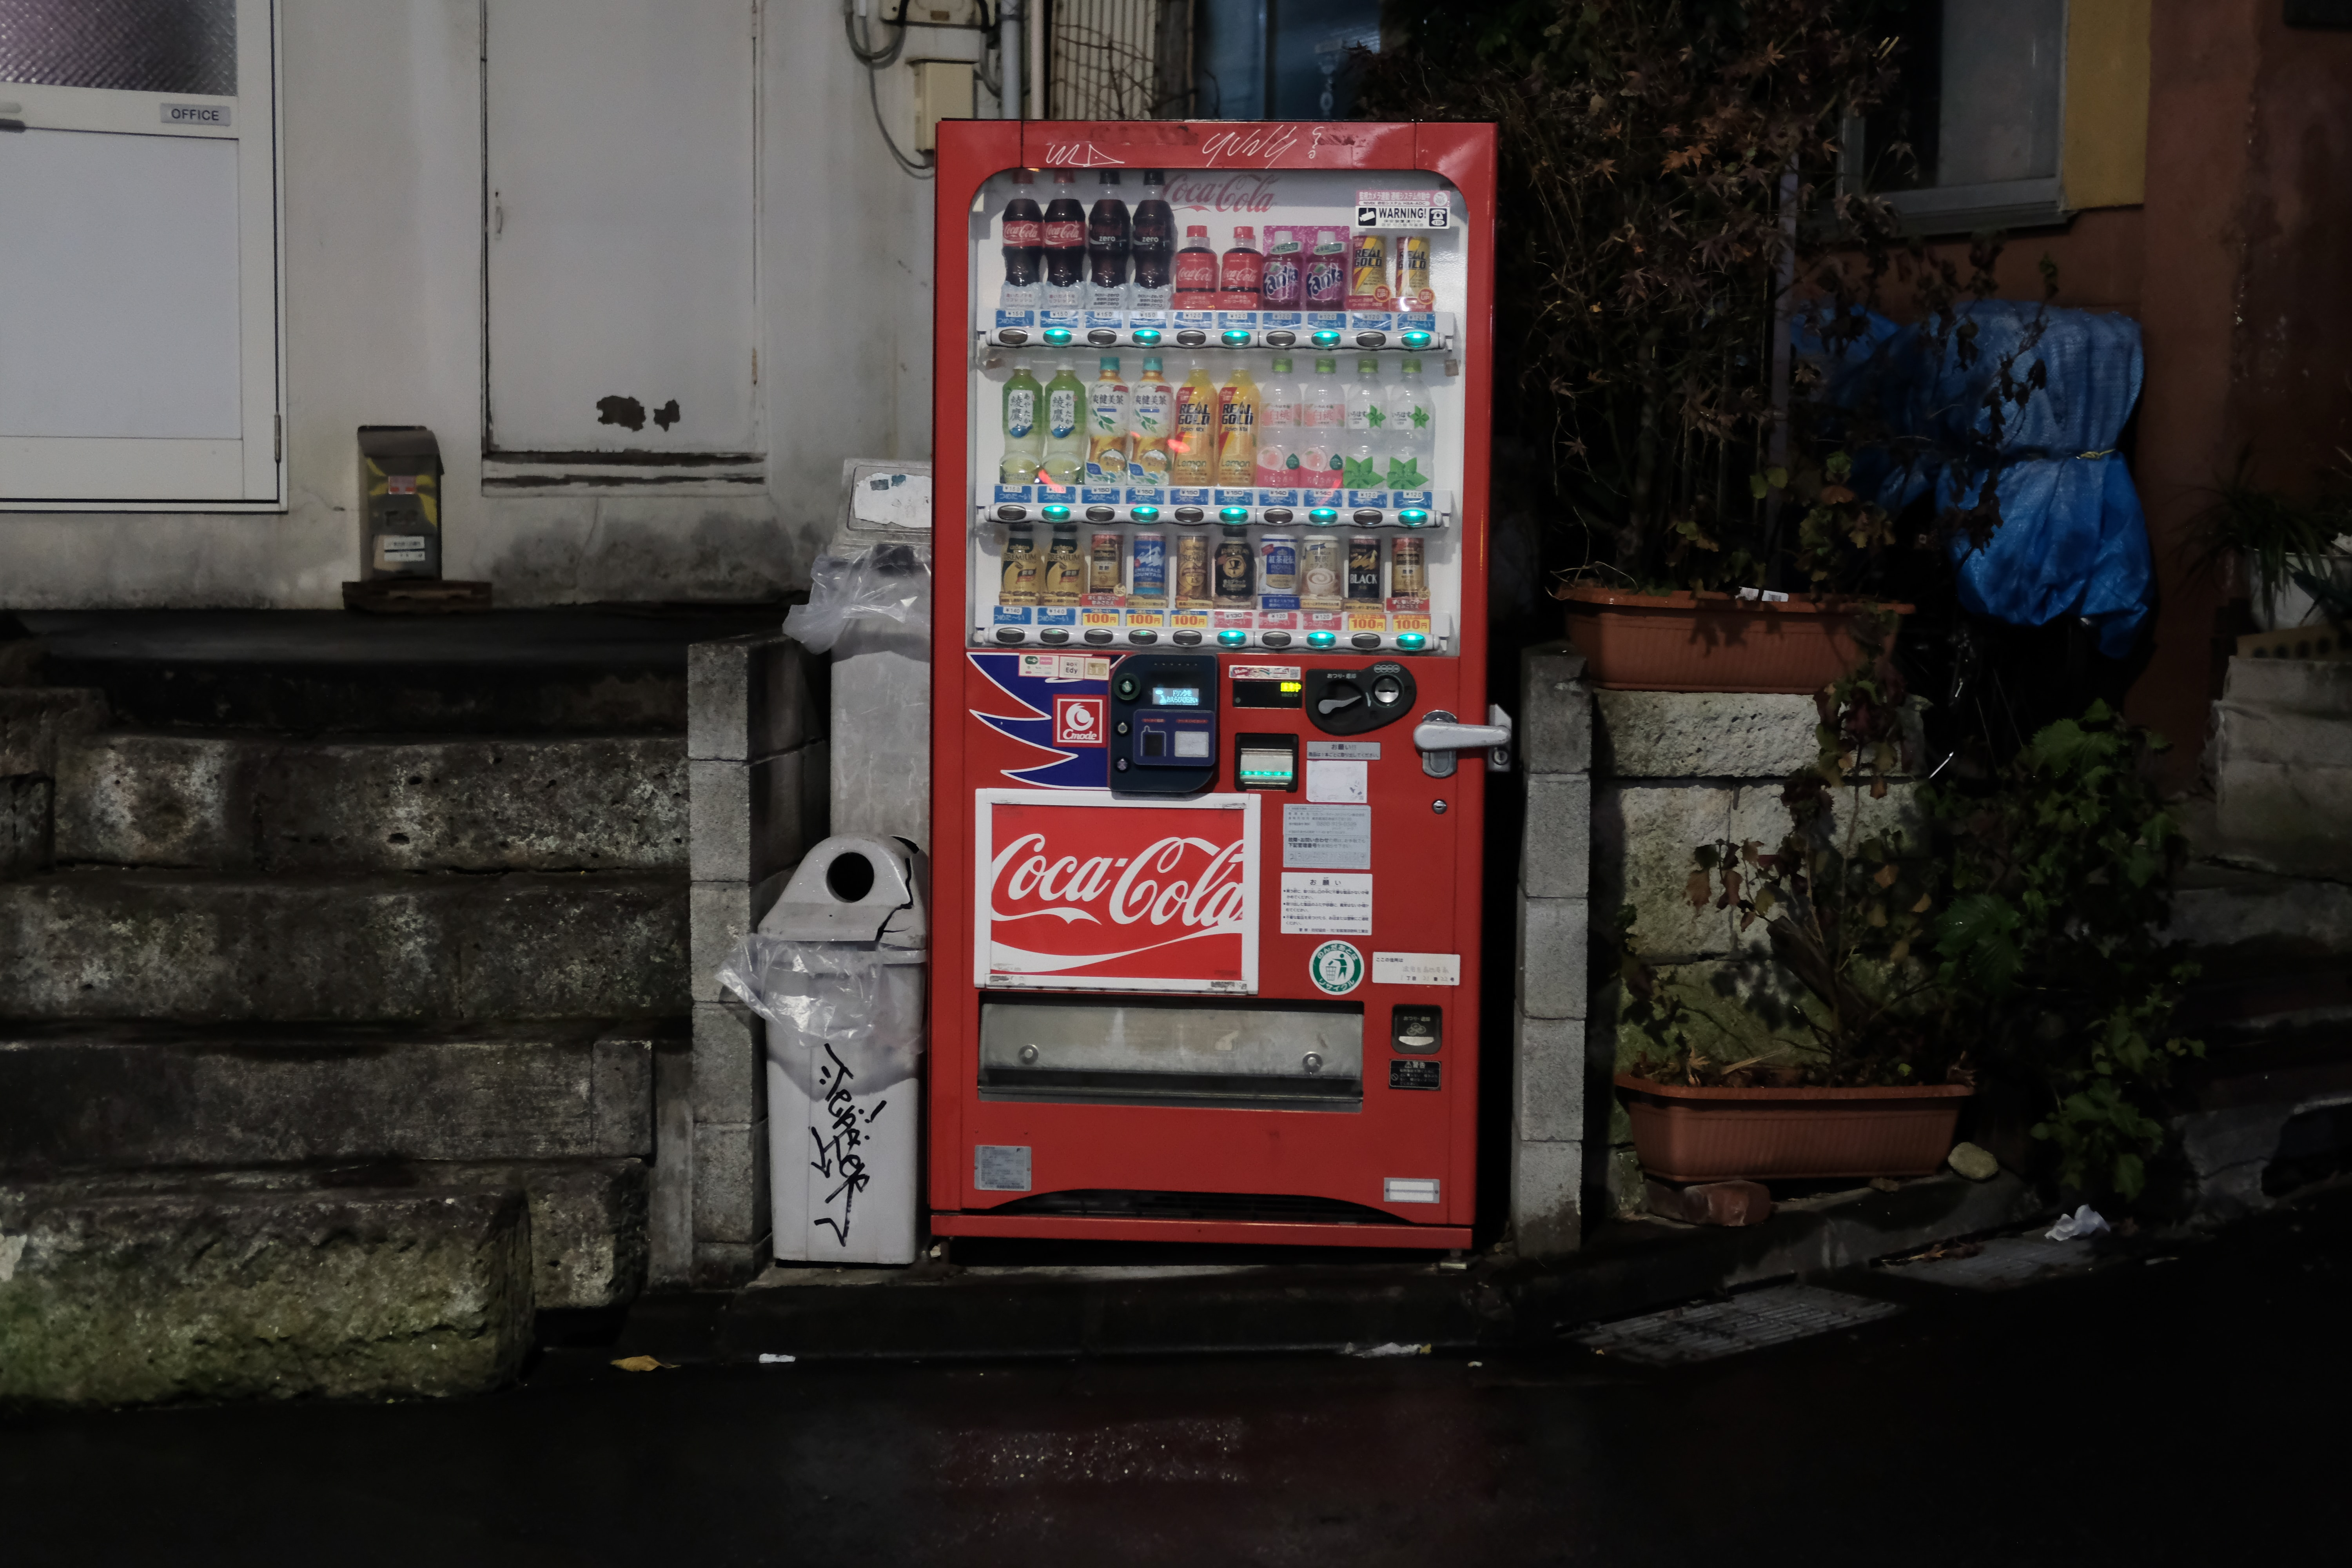 In 2016, There Were an Estimated 3.5 Million Us Vending Machines, 2017 Saw a Shocking Decline: